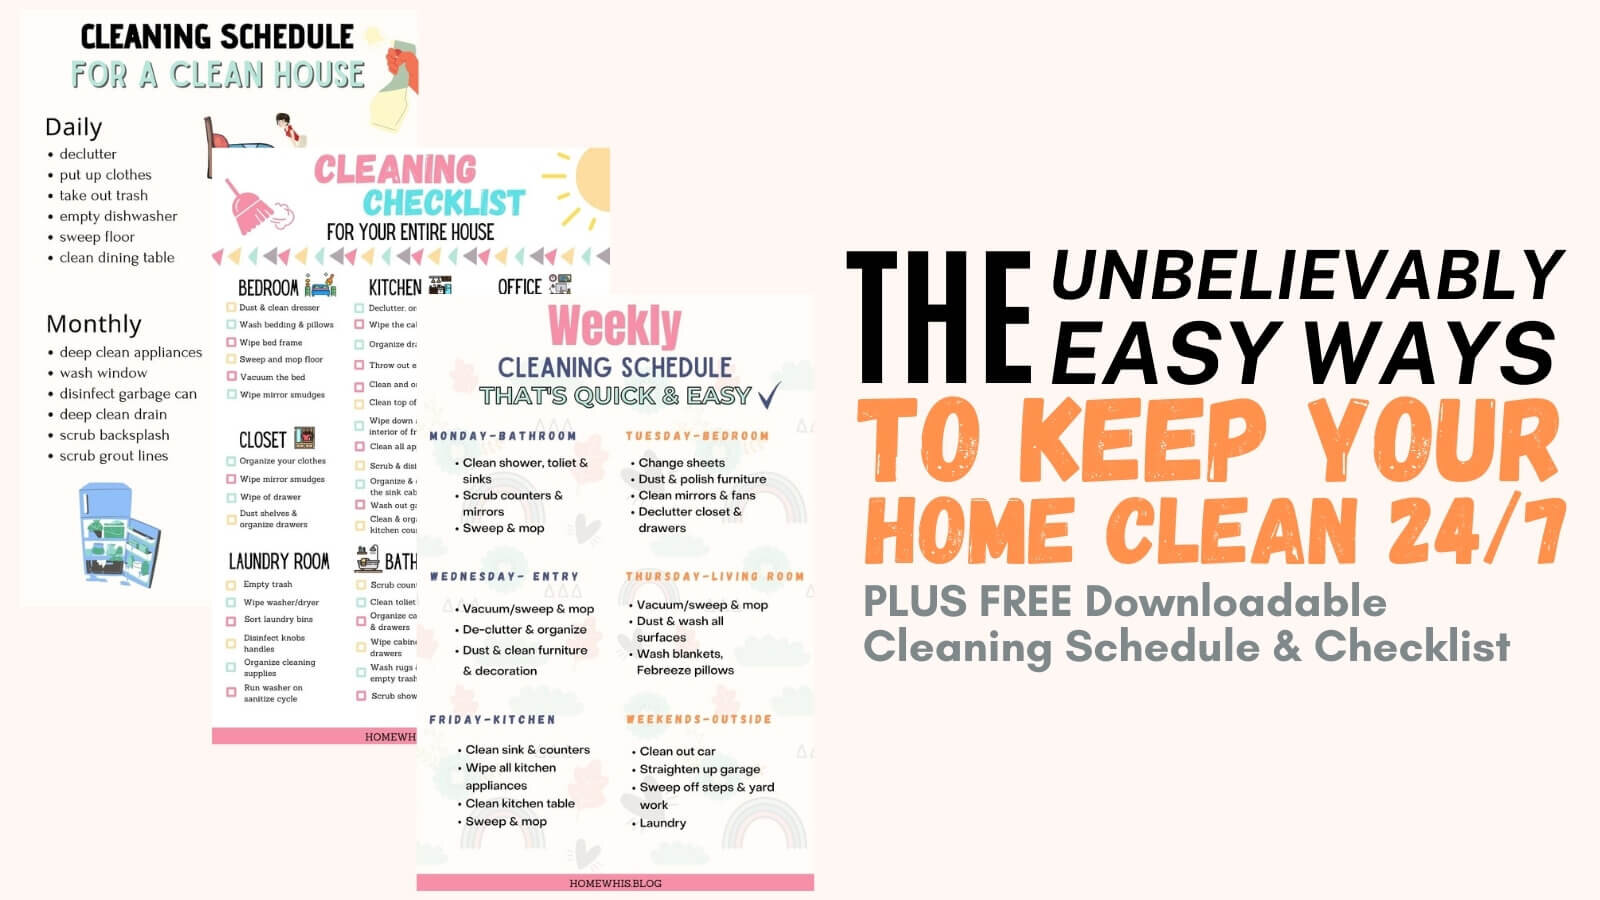 cleaning checklist and schedule.jpg